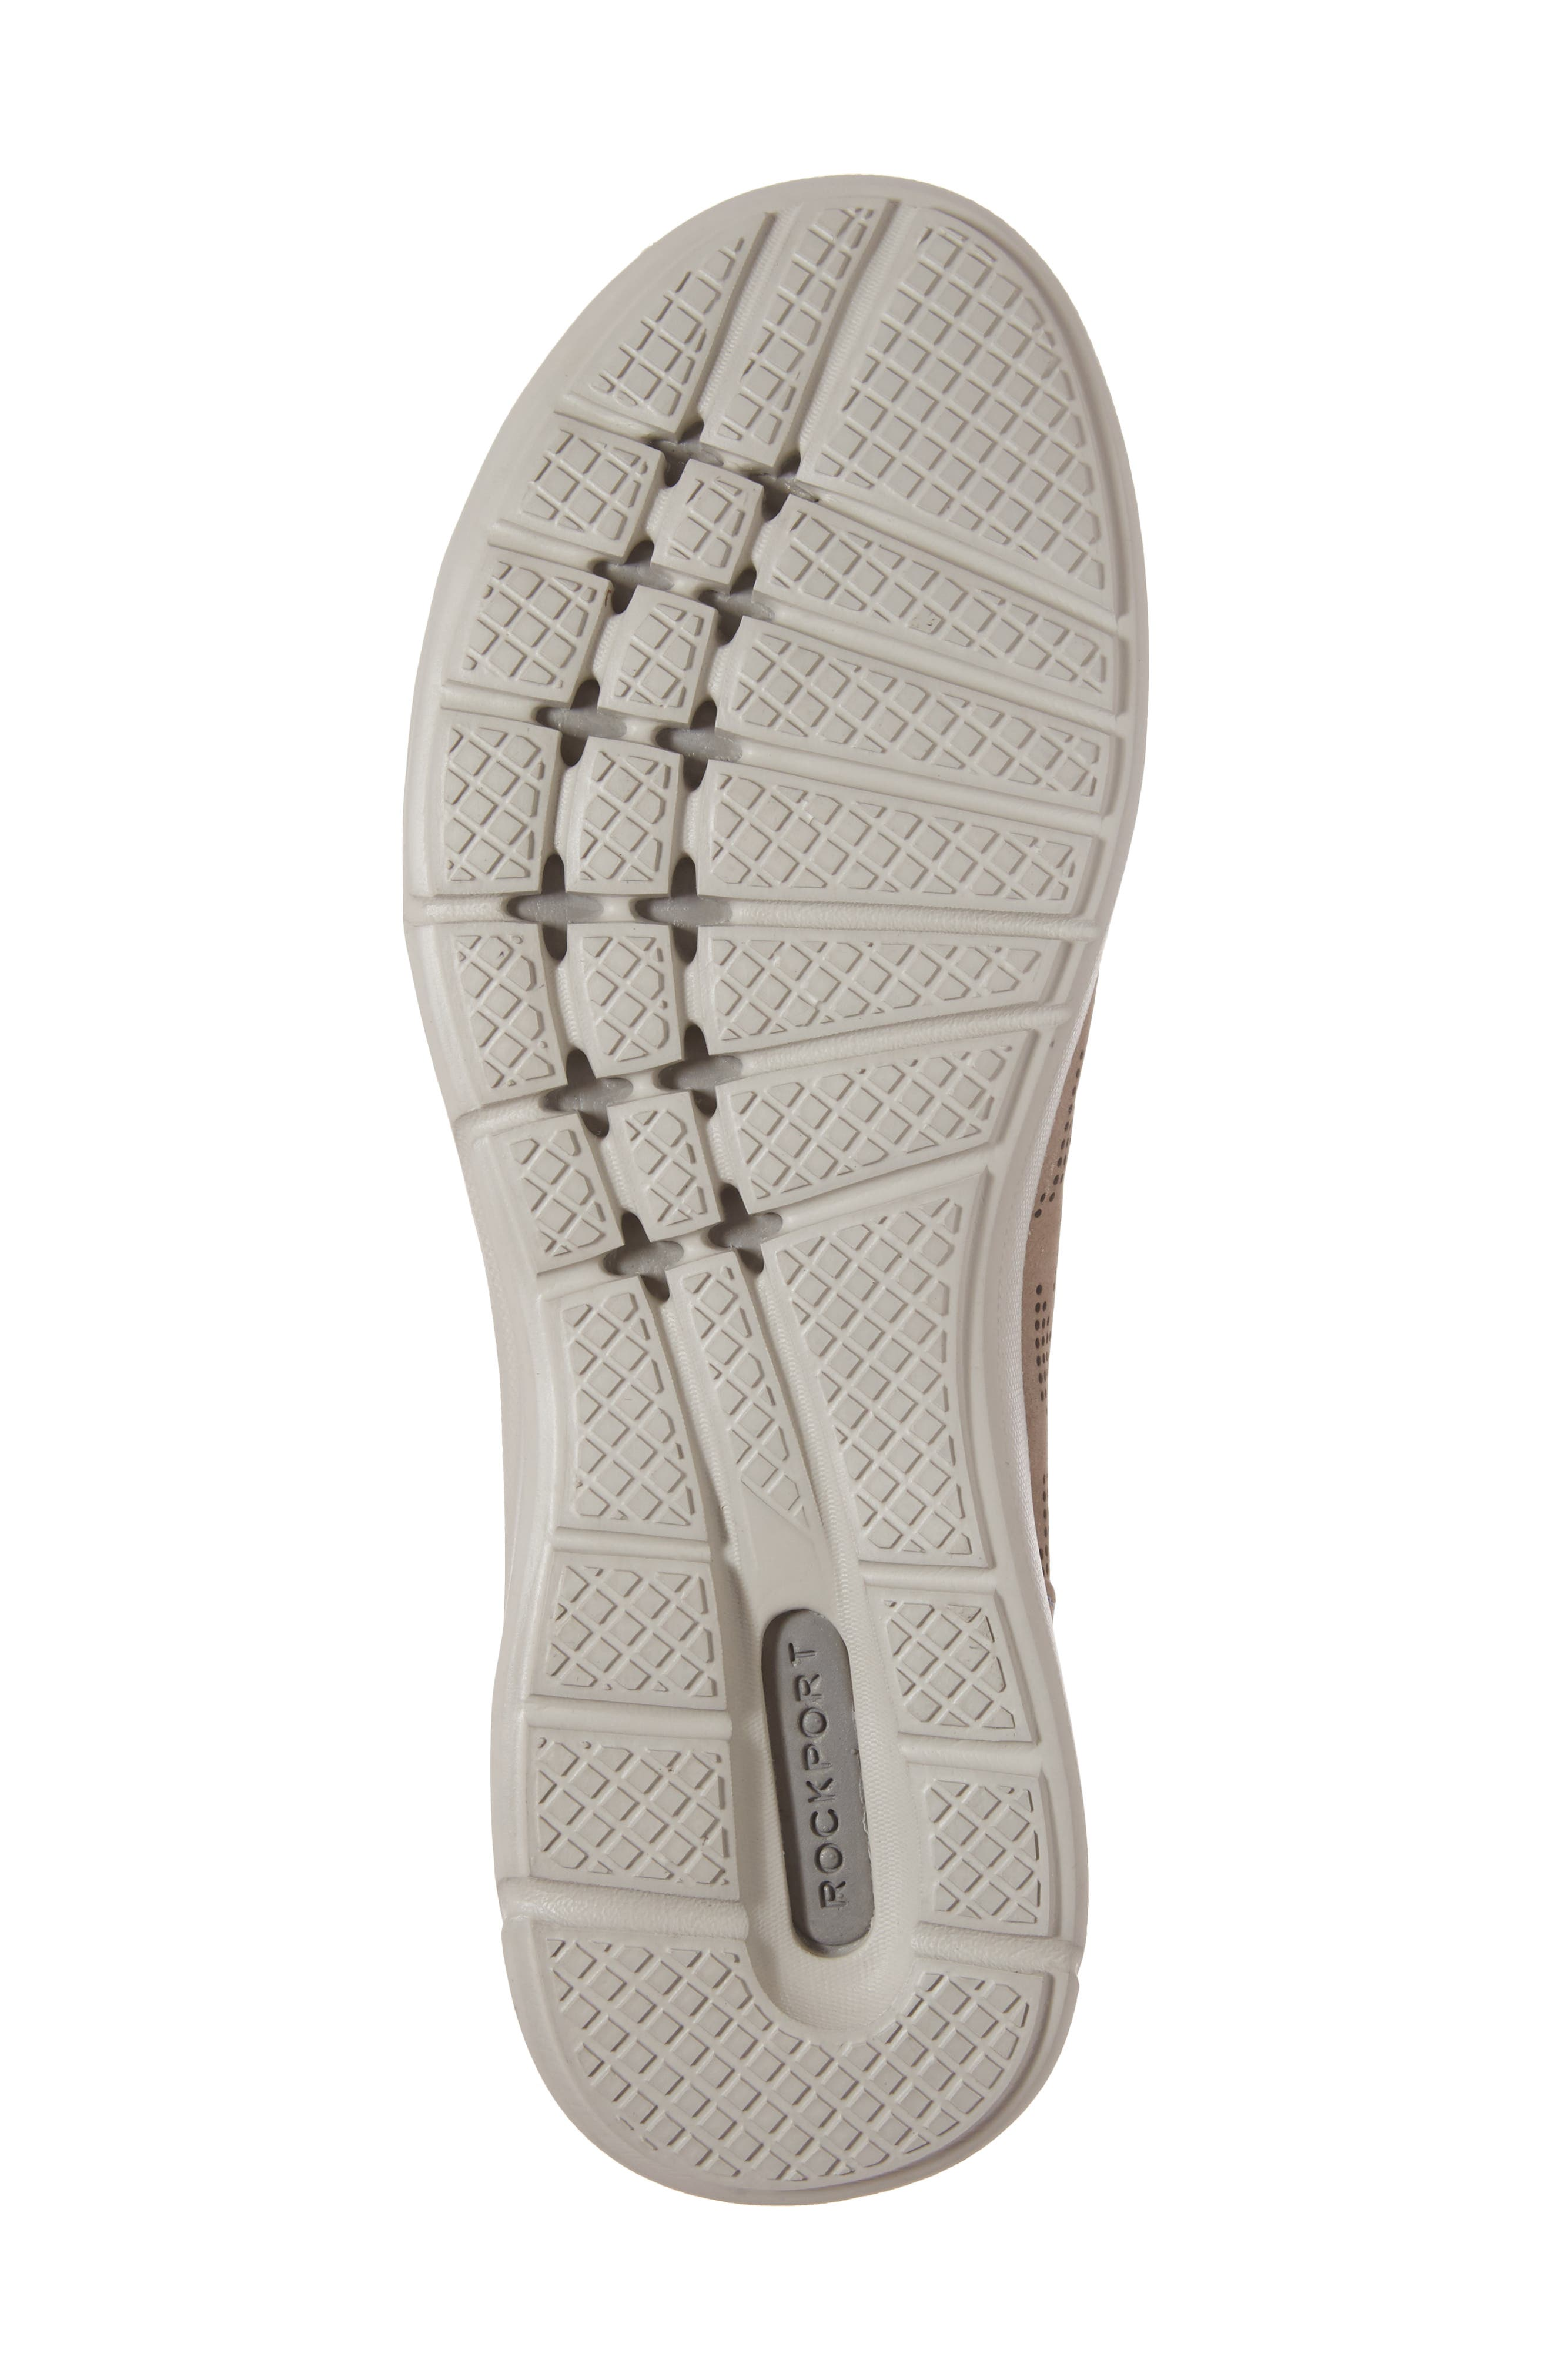 truFLEX Perforated Sneaker,                             Alternate thumbnail 6, color,                             Sand Leather